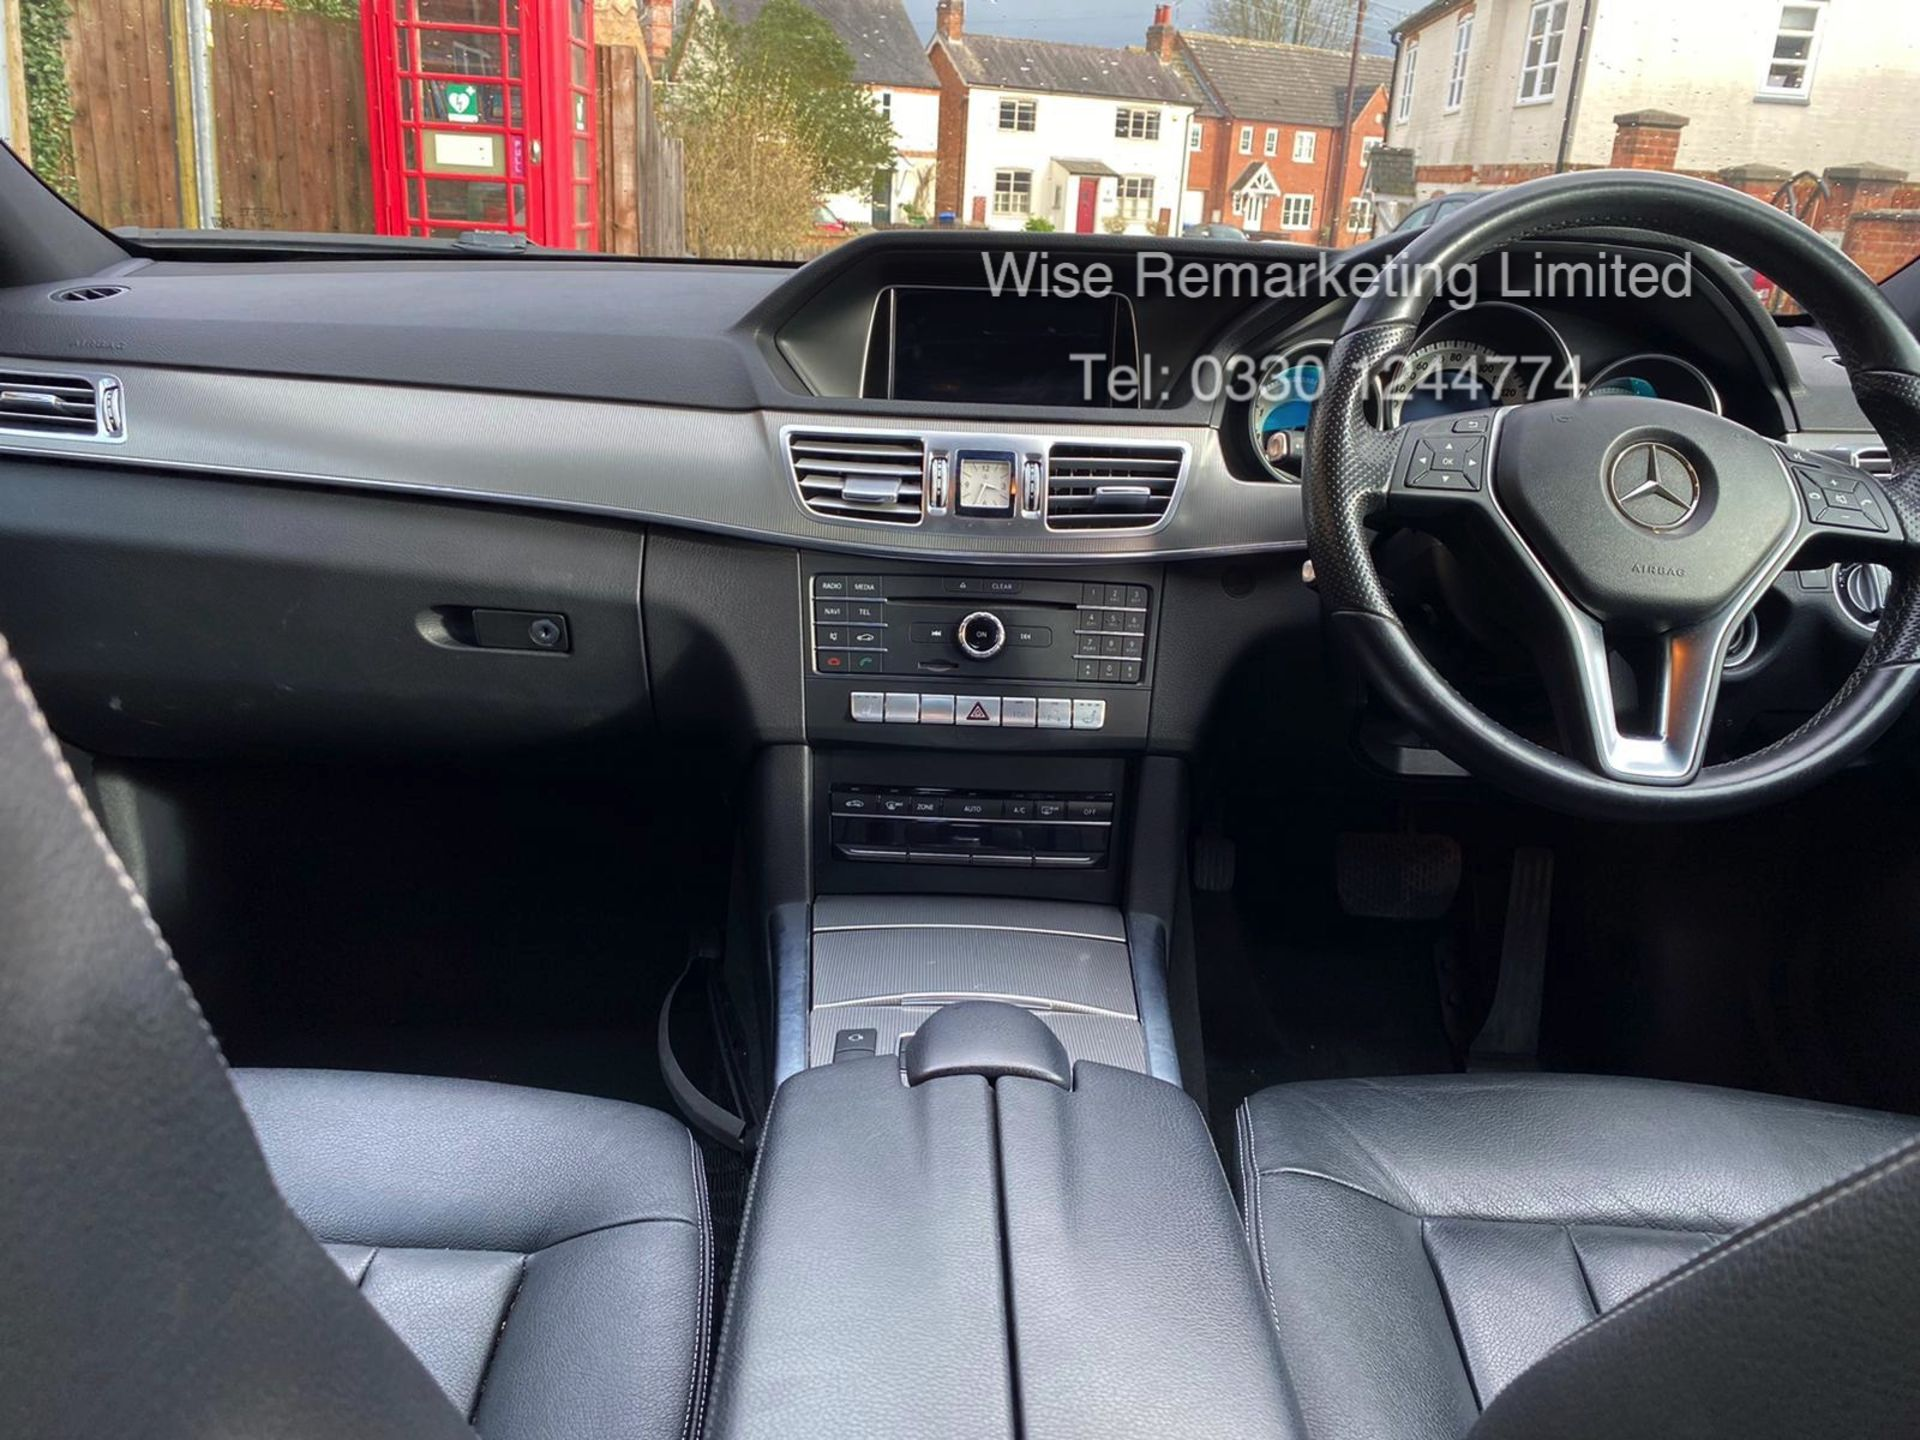 Lot 4 - Mercedes E220d 2.1 Special Equipment Auto 2015 15 Reg - 1 Former Keeper - Sat Nav - Parking Sensors